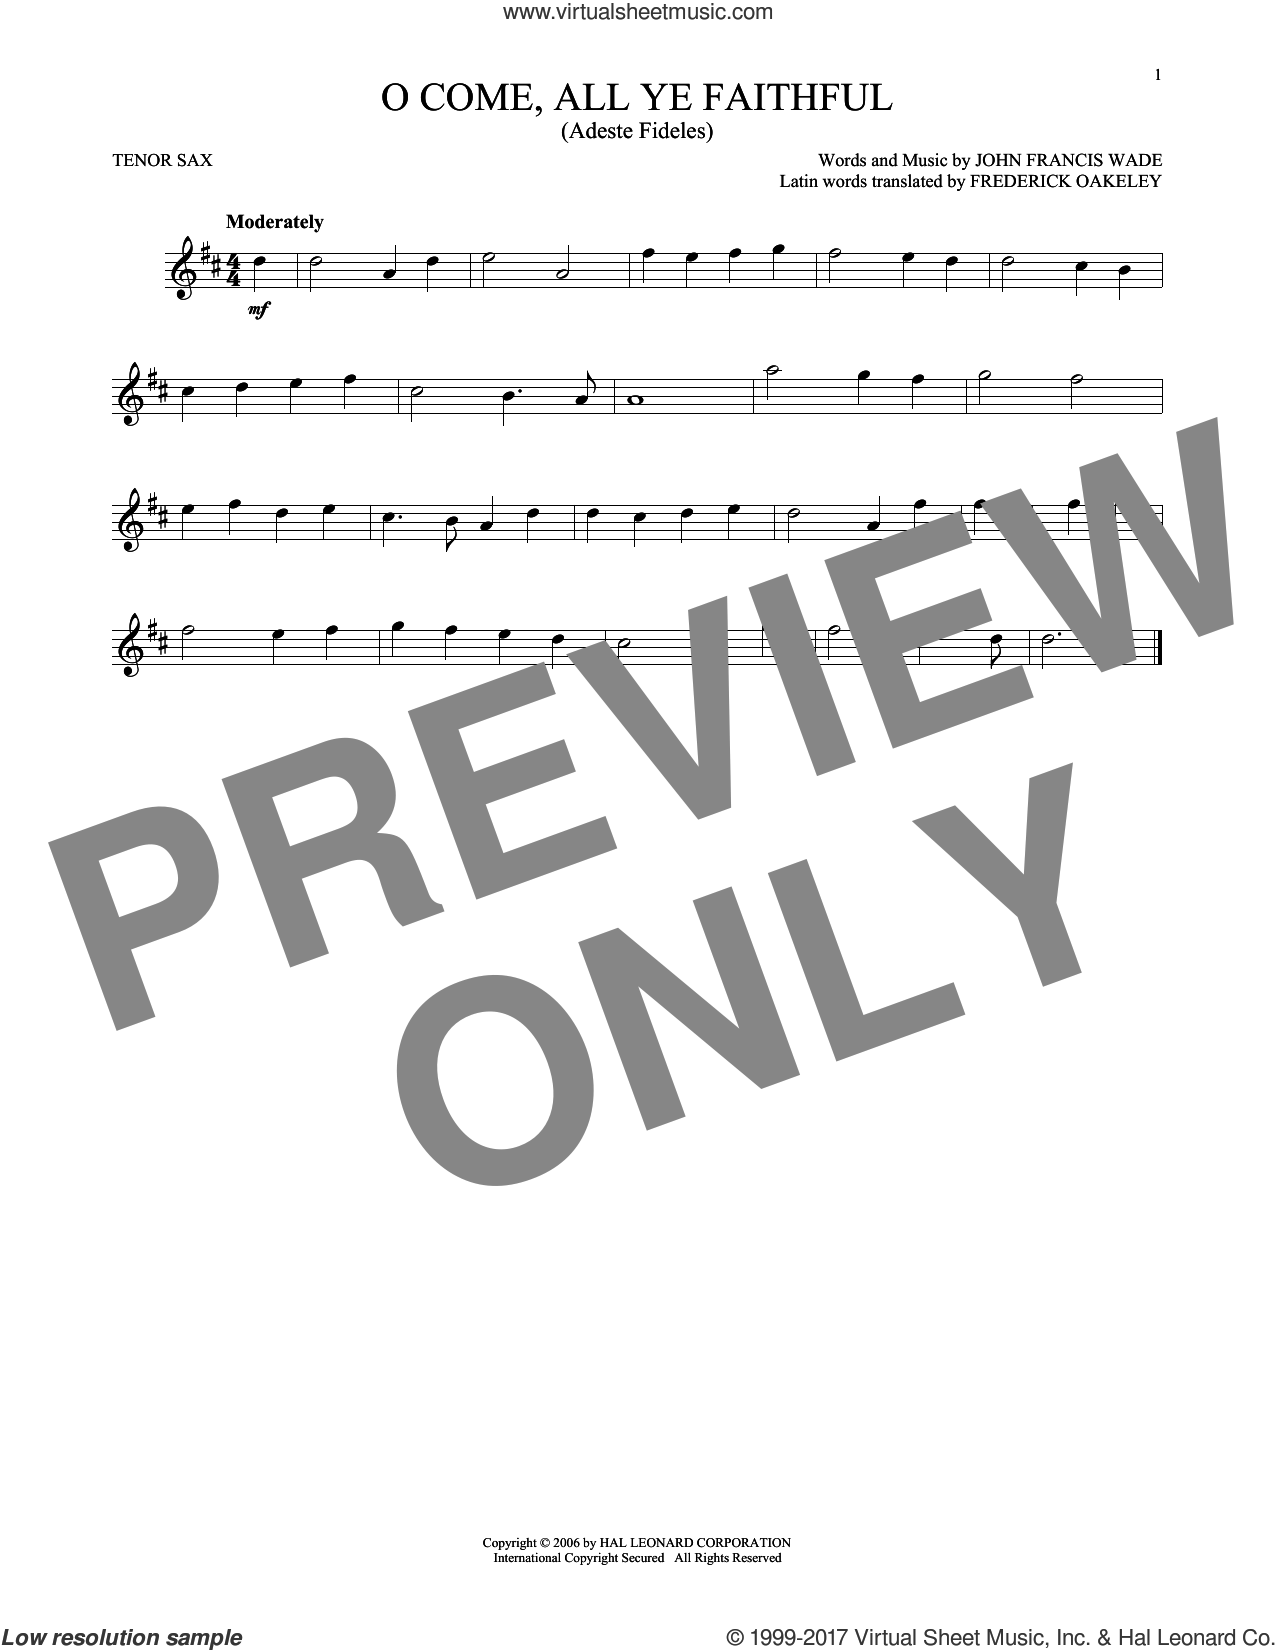 O Come, All Ye Faithful sheet music for tenor saxophone solo by John Francis Wade and Frederick Oakeley (English), classical score, intermediate skill level